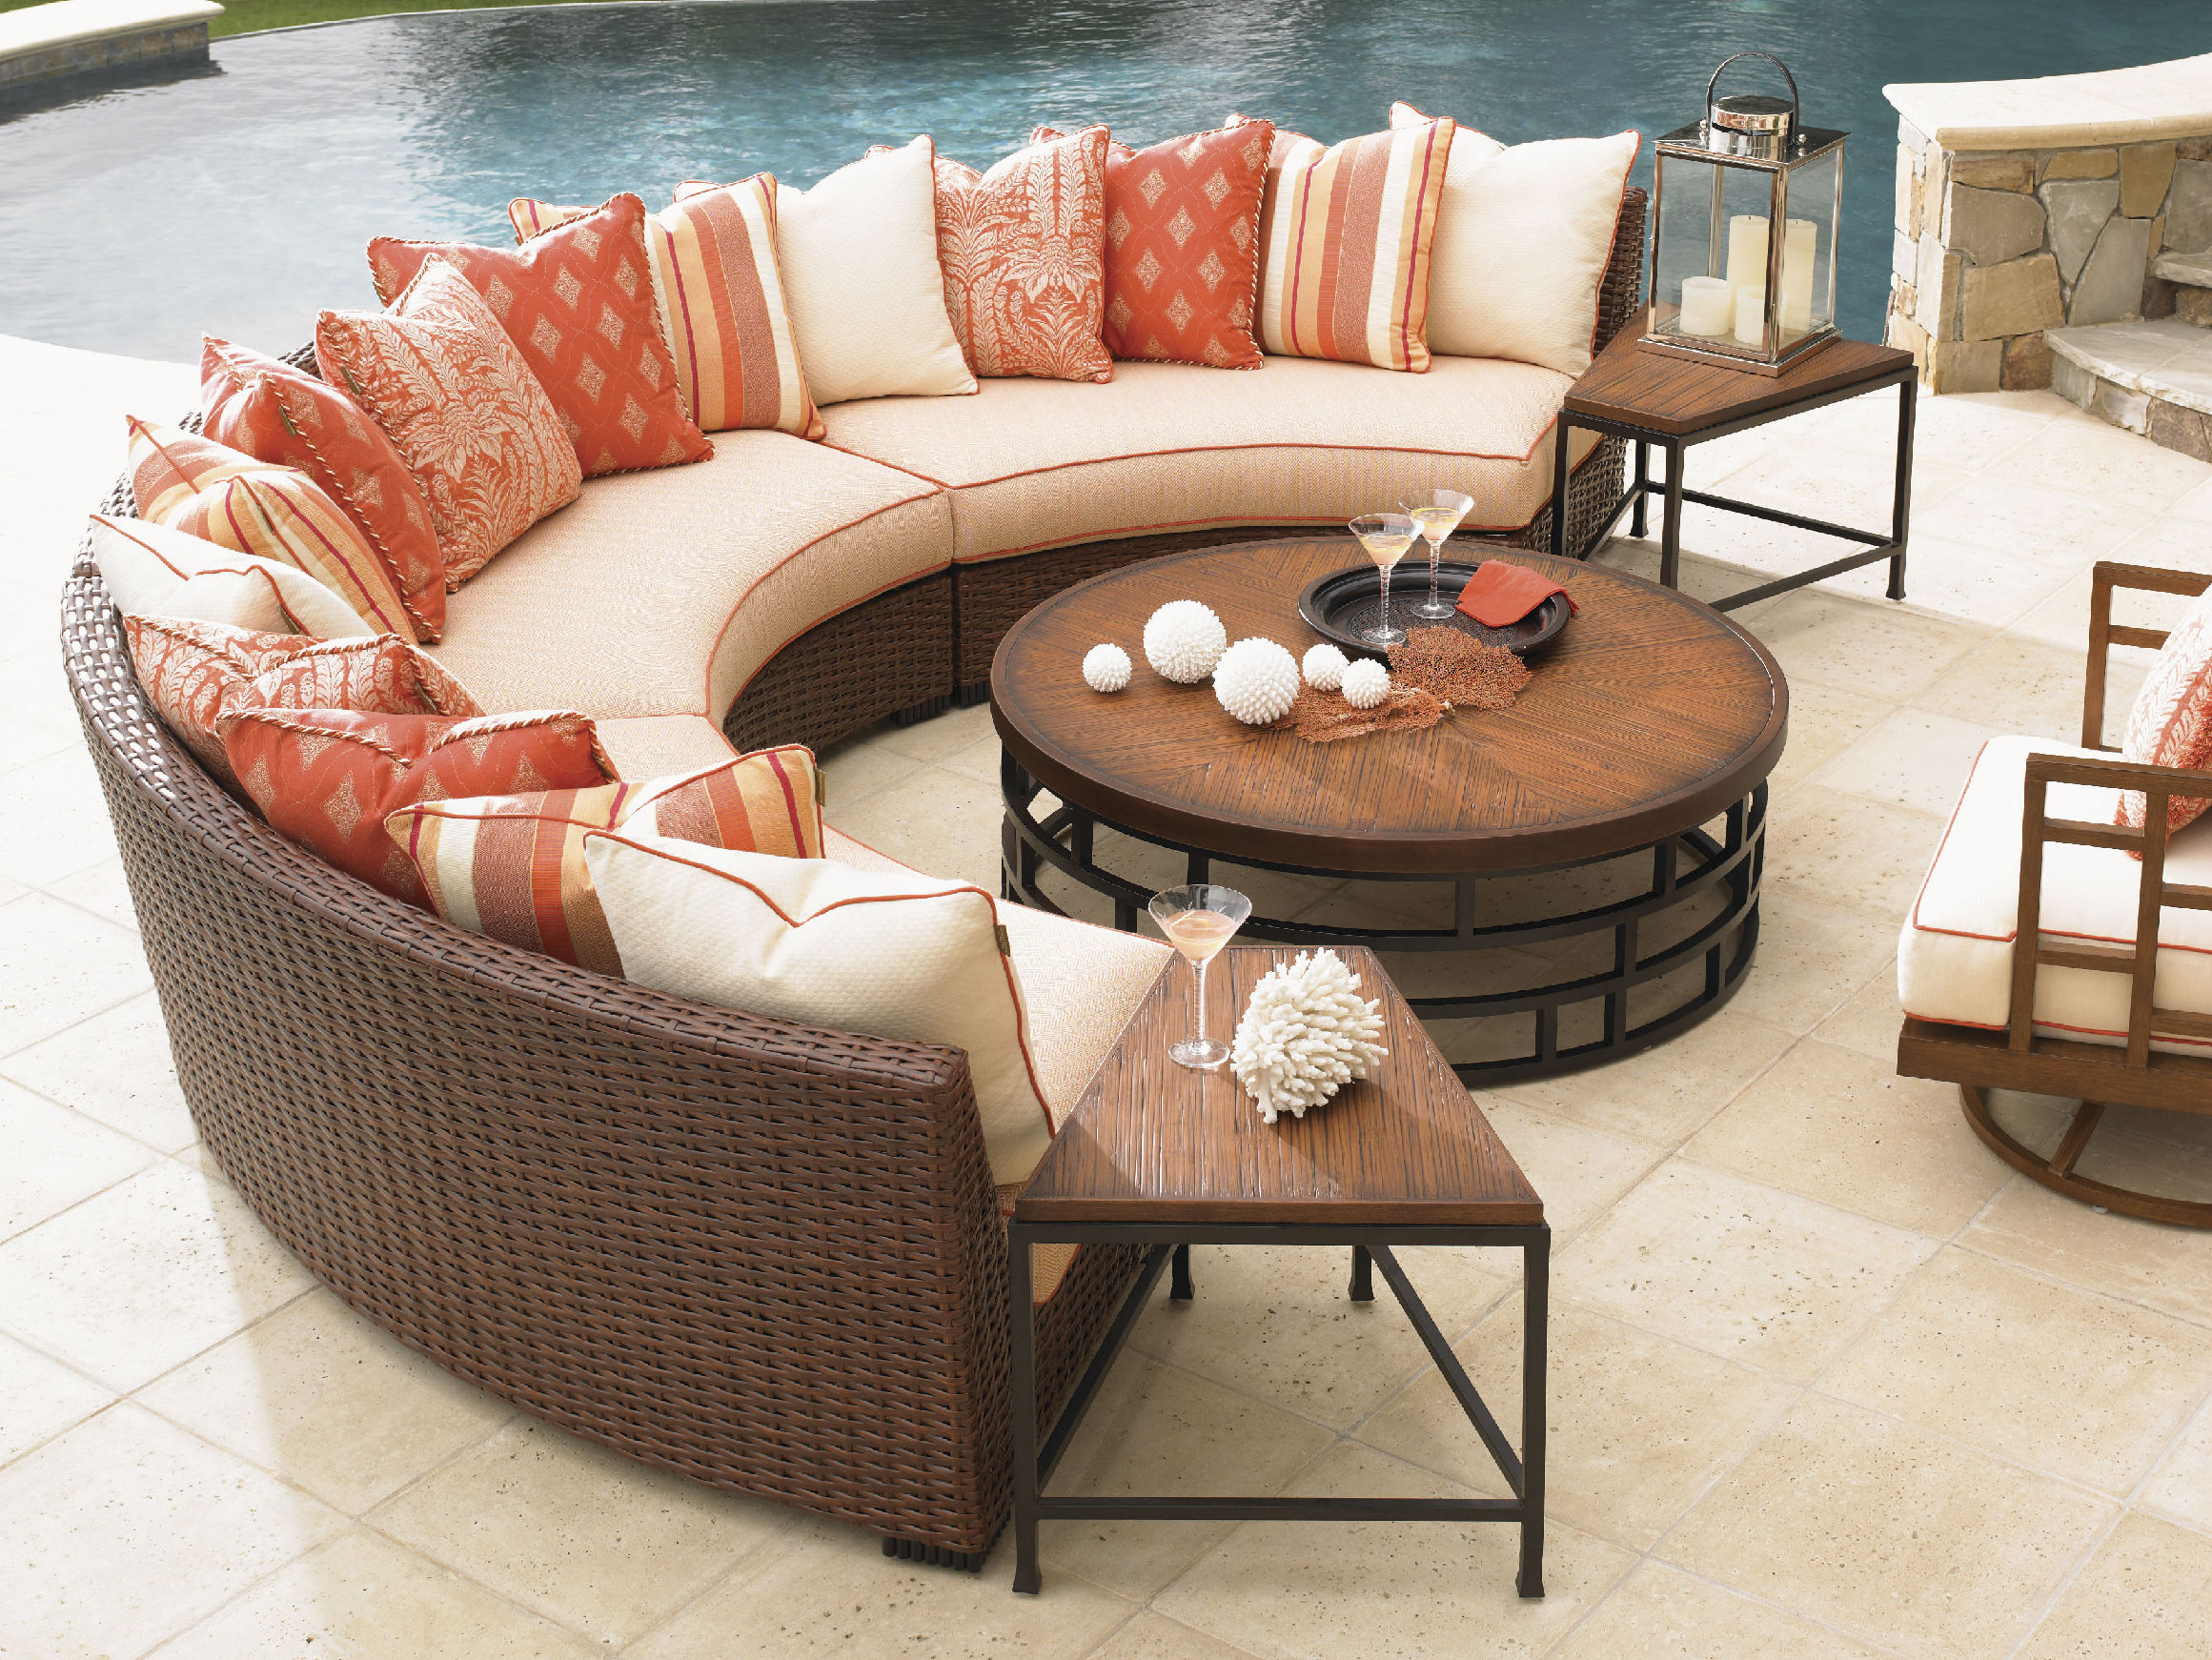 Easy tips for thomasville outdoor furniture purchase Small backyard patio furniture